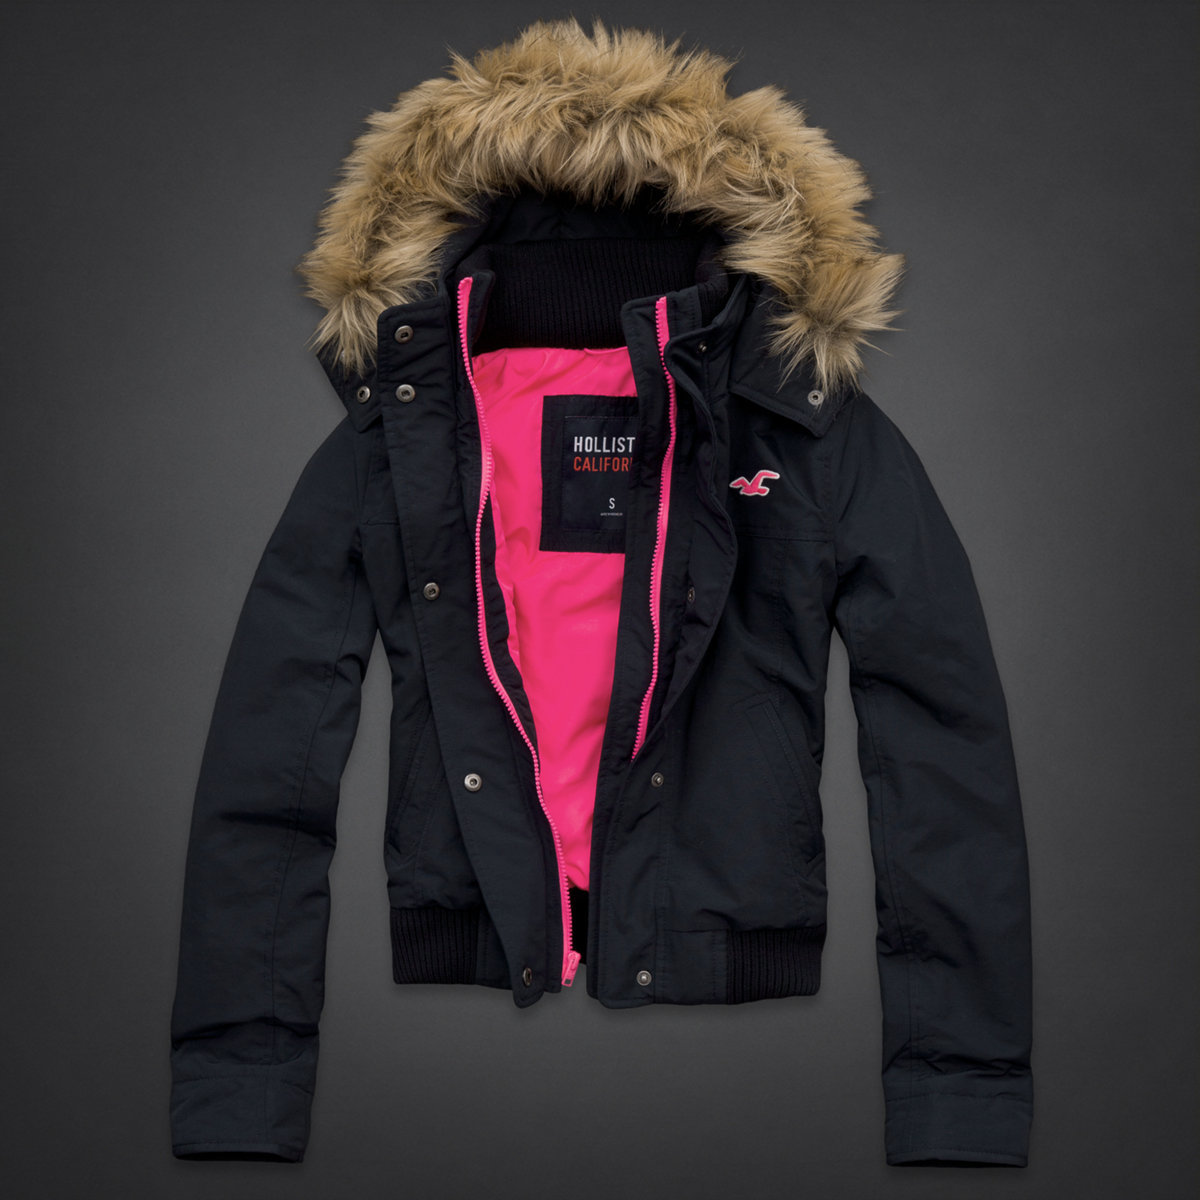 Hollister All-Weather Jacket from Hollister Co.